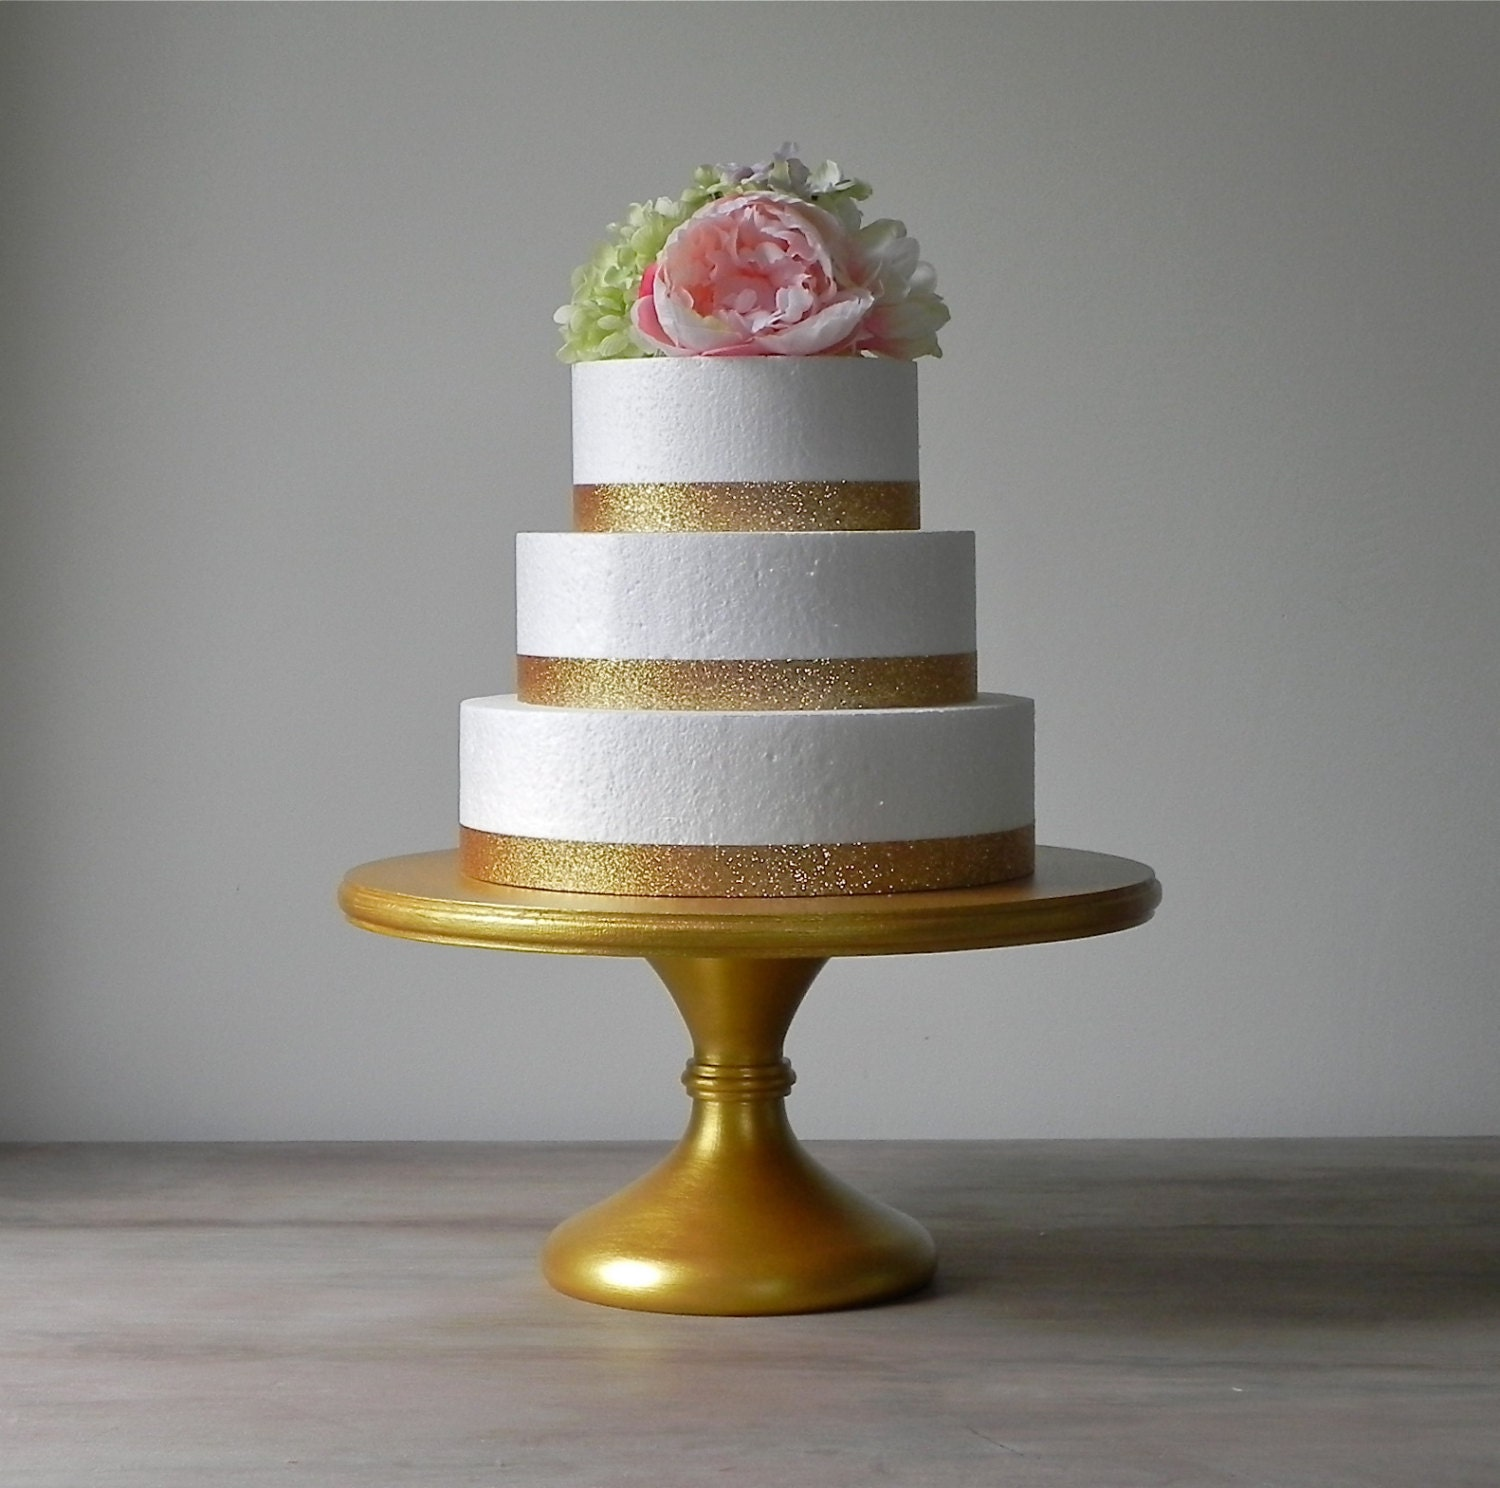 Cake Stands For Weddings: Gold Cake Stand 18 Gold Wedding Cake Stand Cupcake Gold